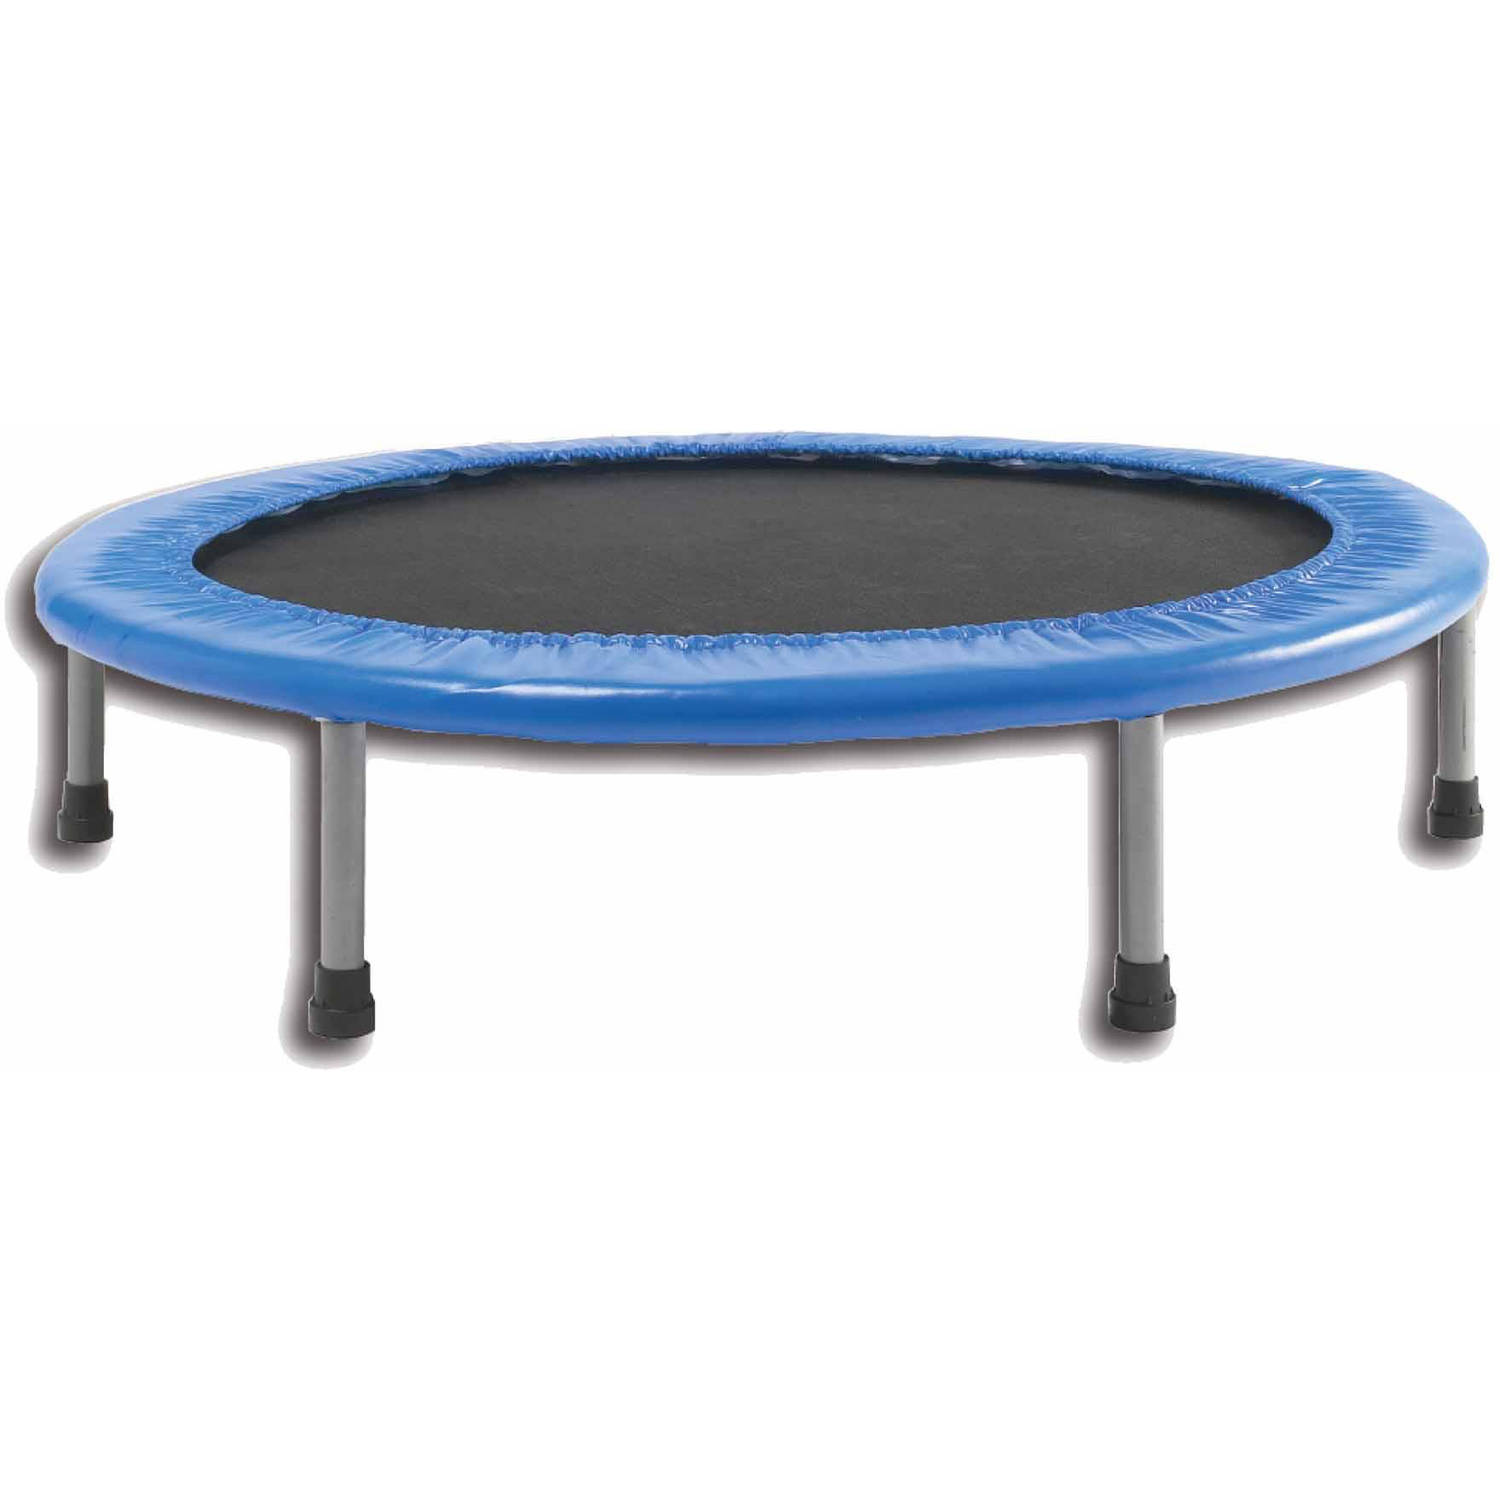 "Image of Airzone 38"" Fitness Trampoline, Blue"